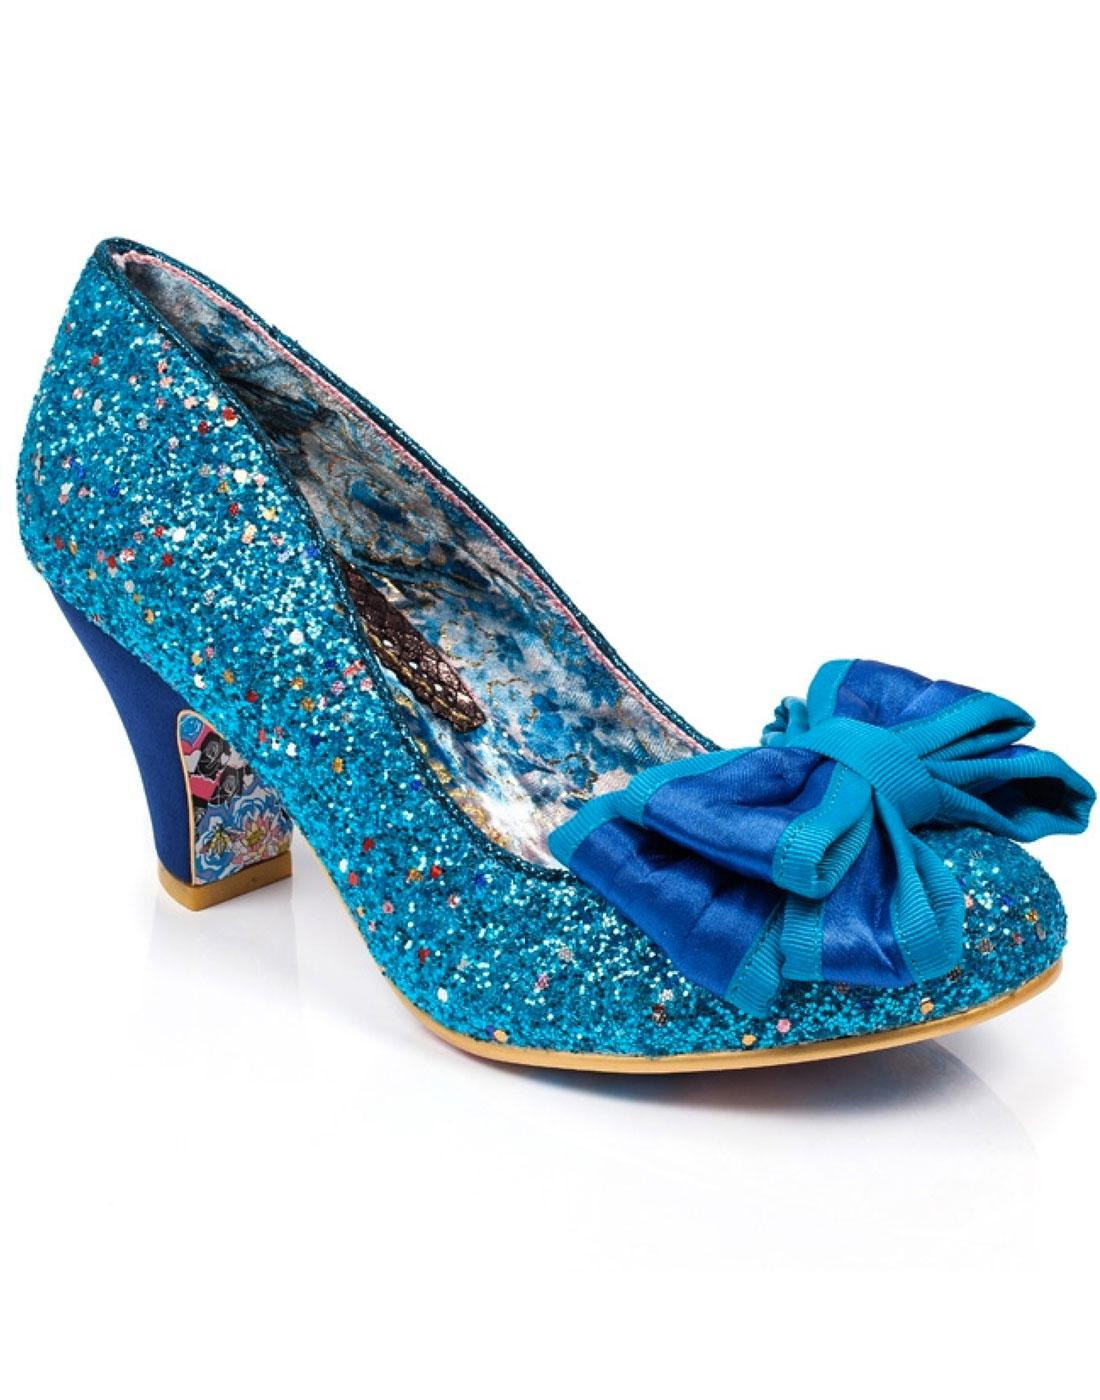 Ban Joe IRREGULAR CHOICE Blue Glitter Retro Heels